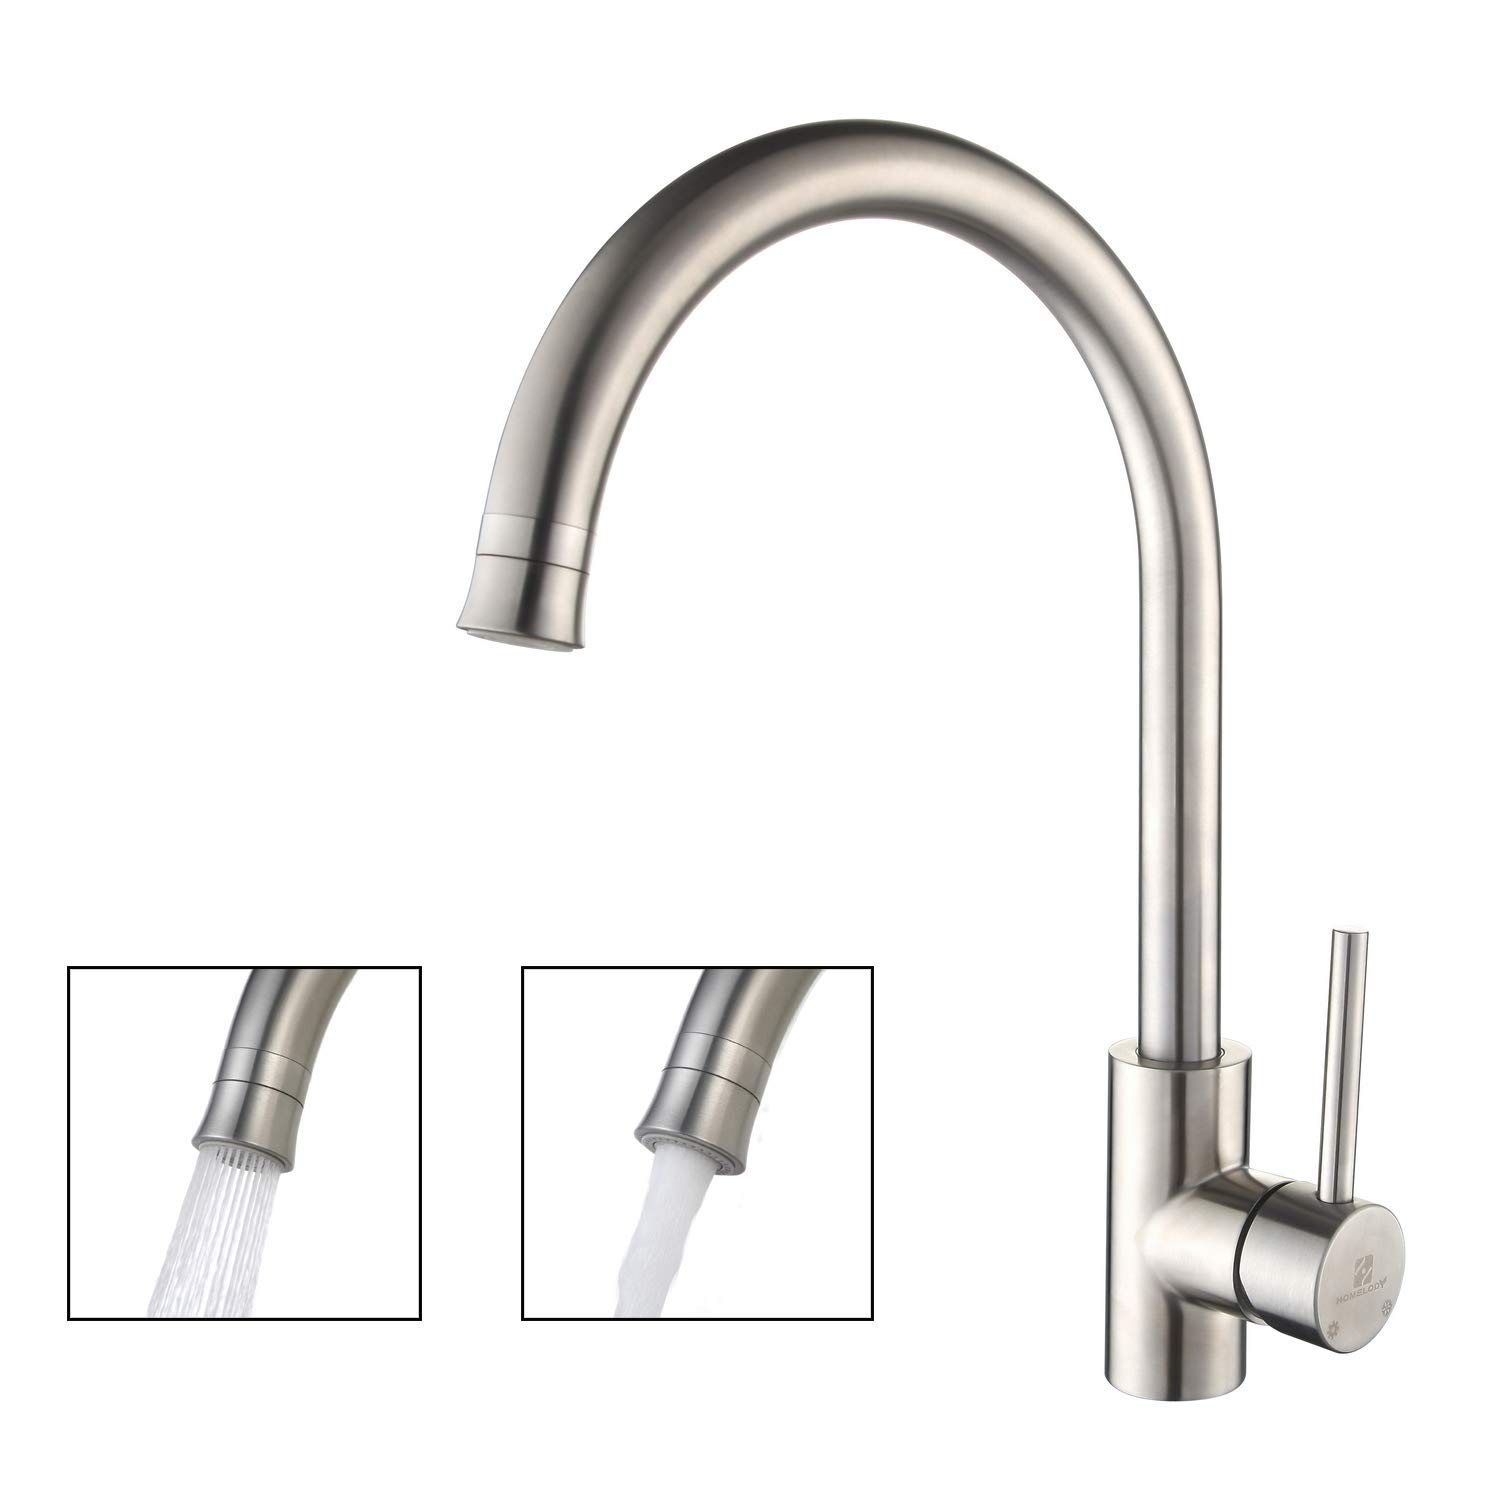 HOMELODY Kitchen Faucet 2 Functions 360 Swivel Kitchen Sink Faucet Single Handle Brushed Nickel Lead-Free Kitchen Mixers High Stainless Steel Faucet with Cold and Hot Water